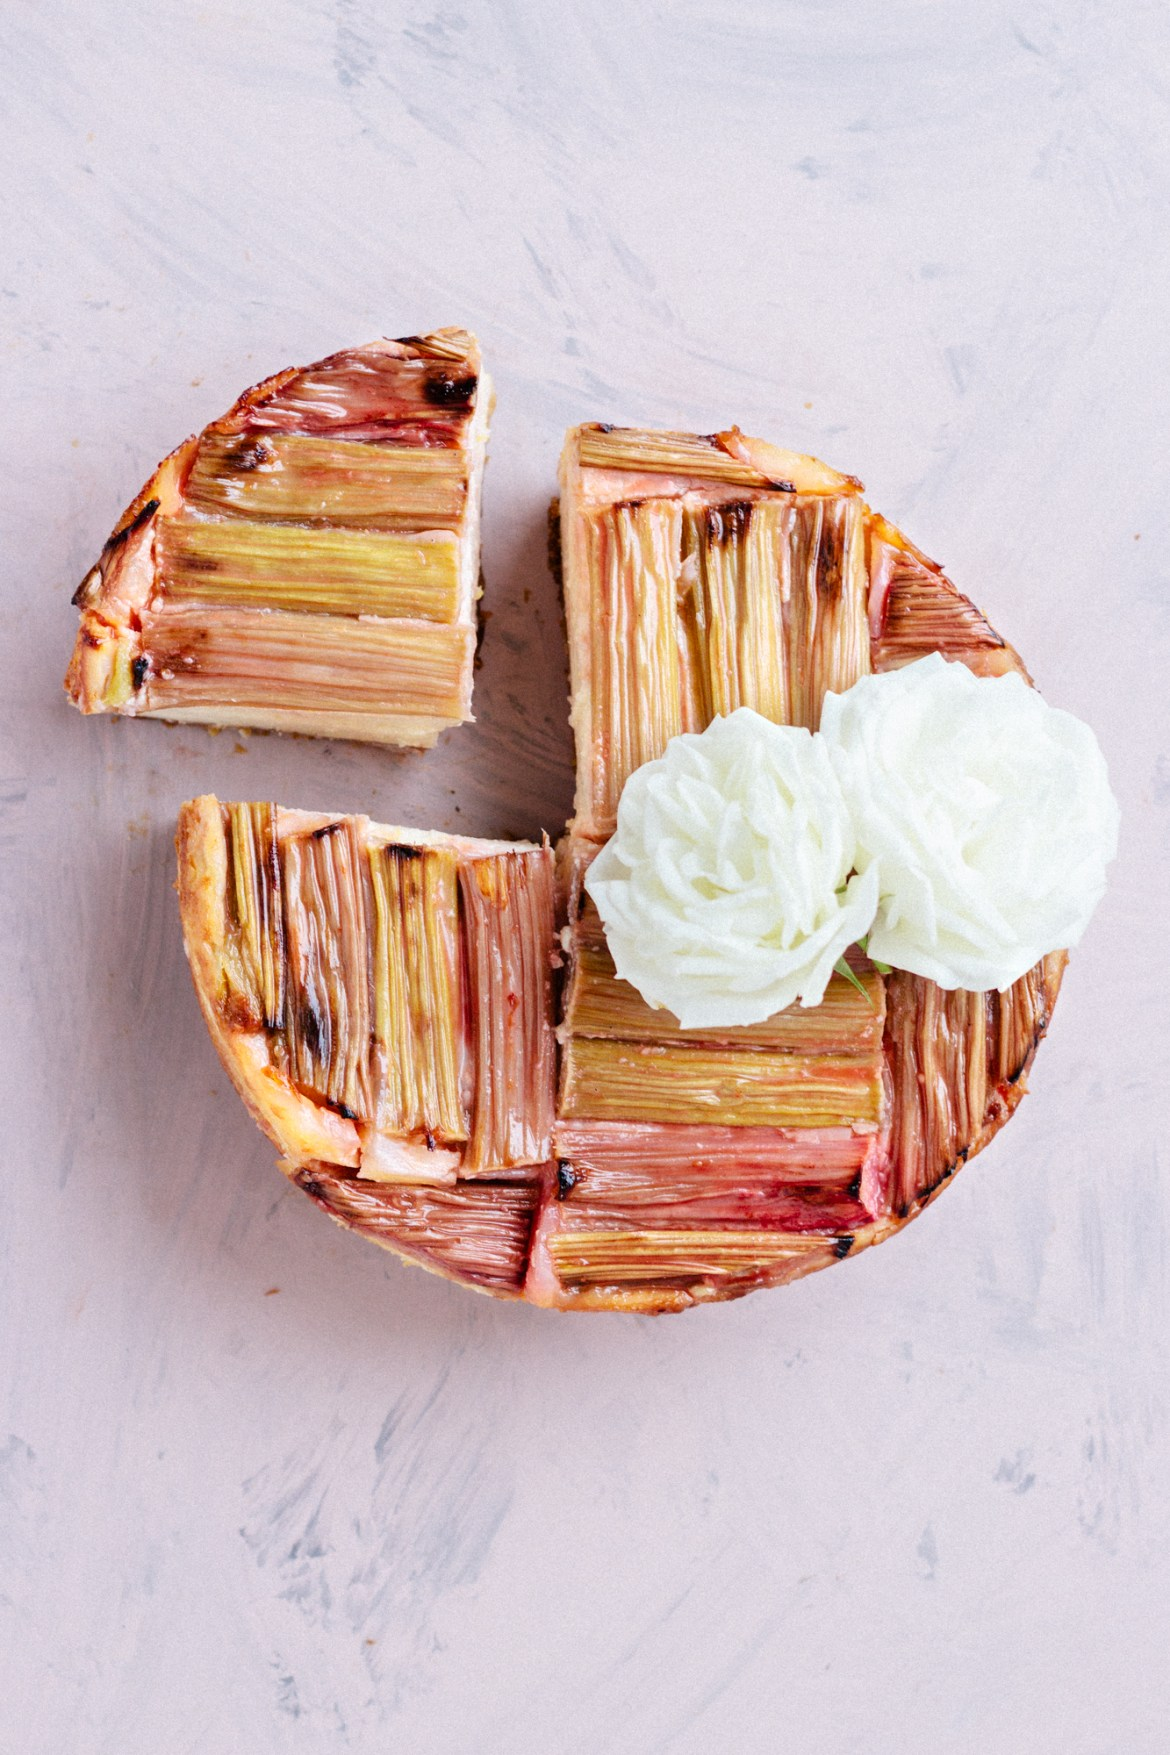 Vegan Baked Rhubarb Cheesecake (nut free & high in protein)